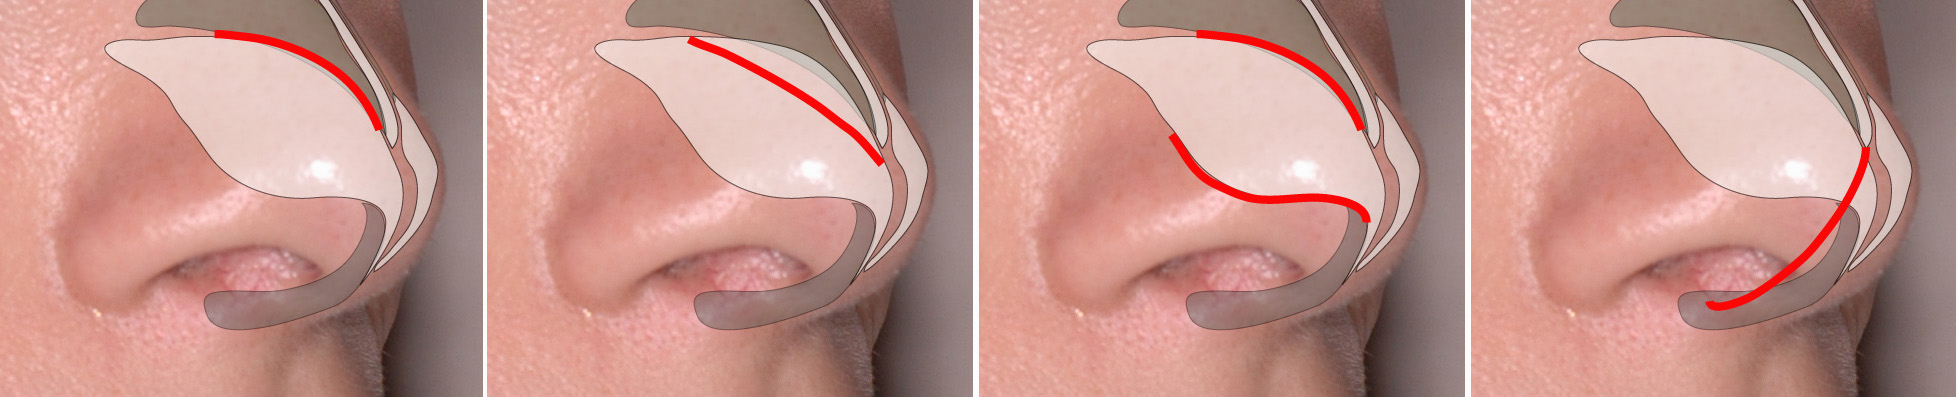 internal incisions (shown in red) - closed rhinoplasty